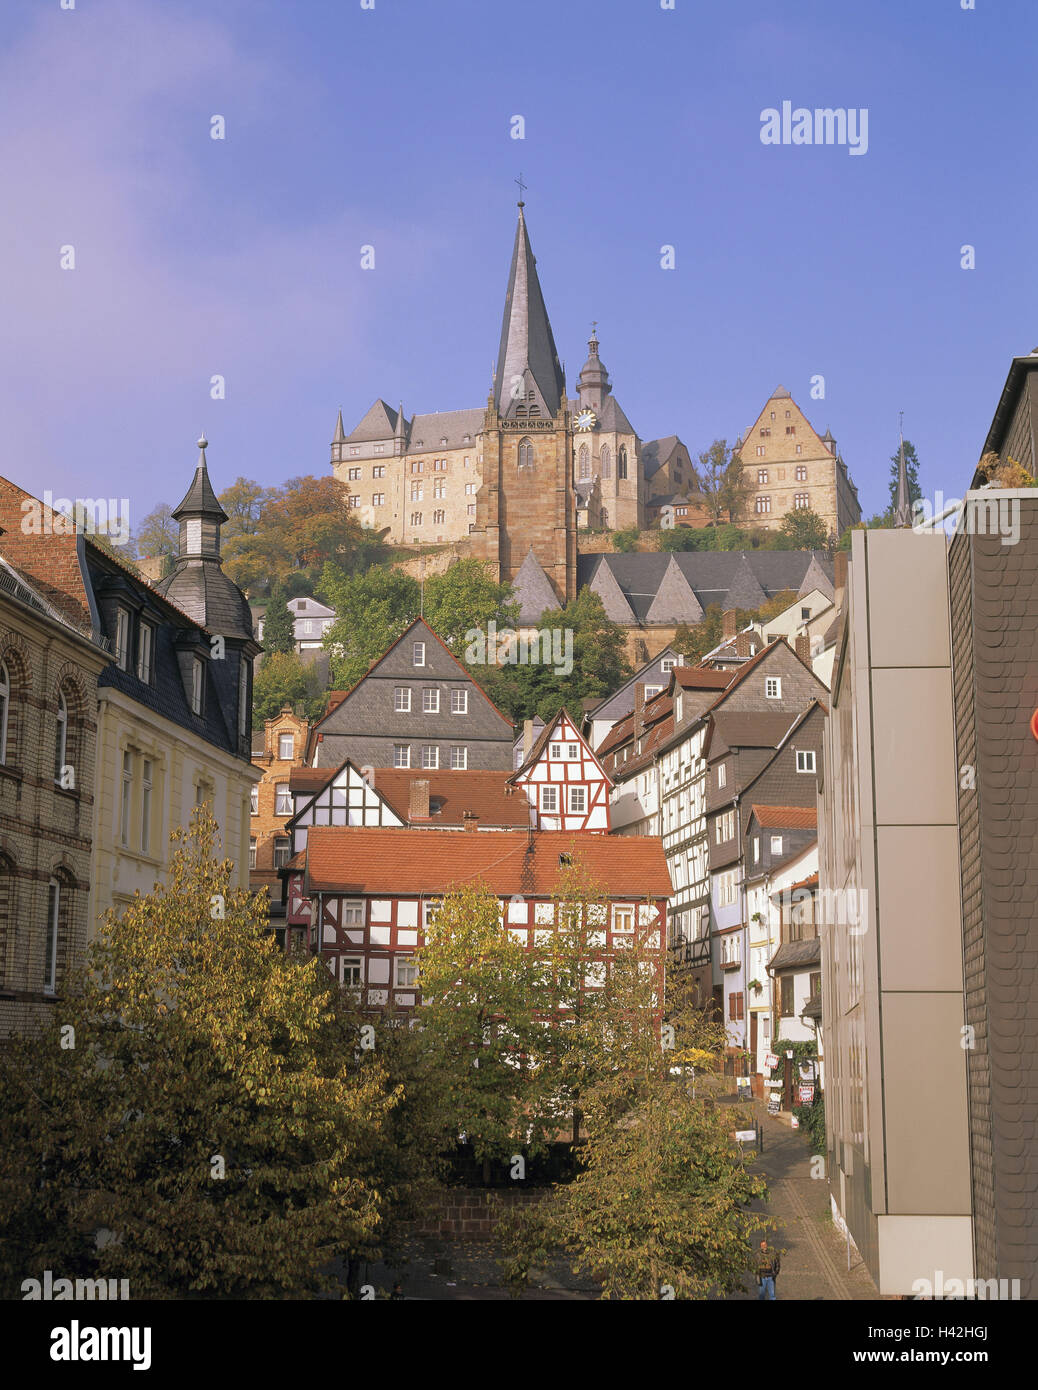 Germany, Hessen, Marburg, town view, Marien's church, lock, Europe, town, Old Town, houses, half-timbered houses, - Stock Image